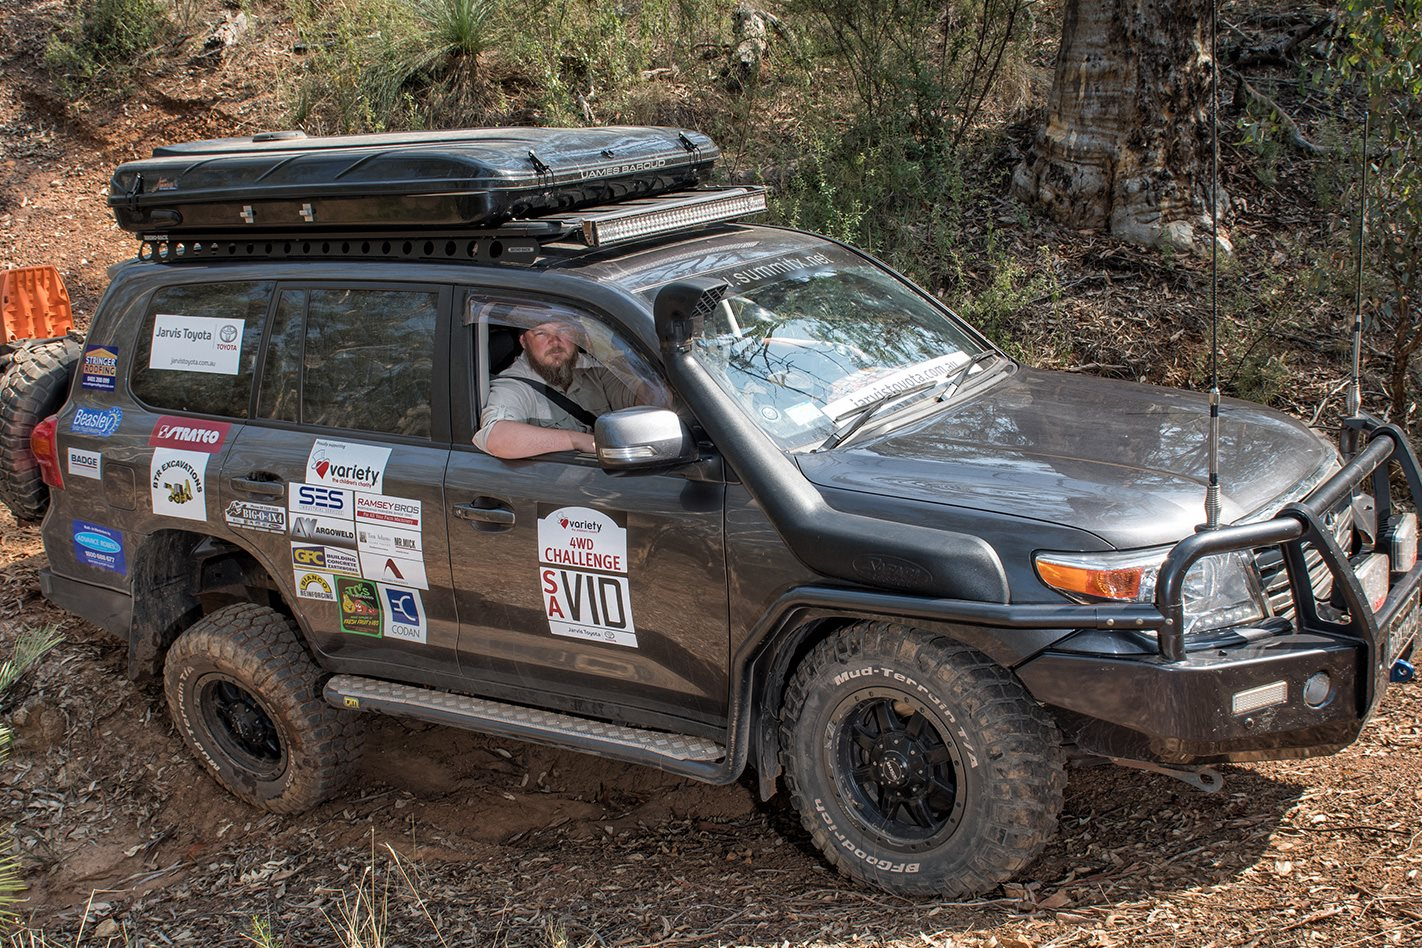 Gavin Gillett 2014 Land Cruiser 200 Series